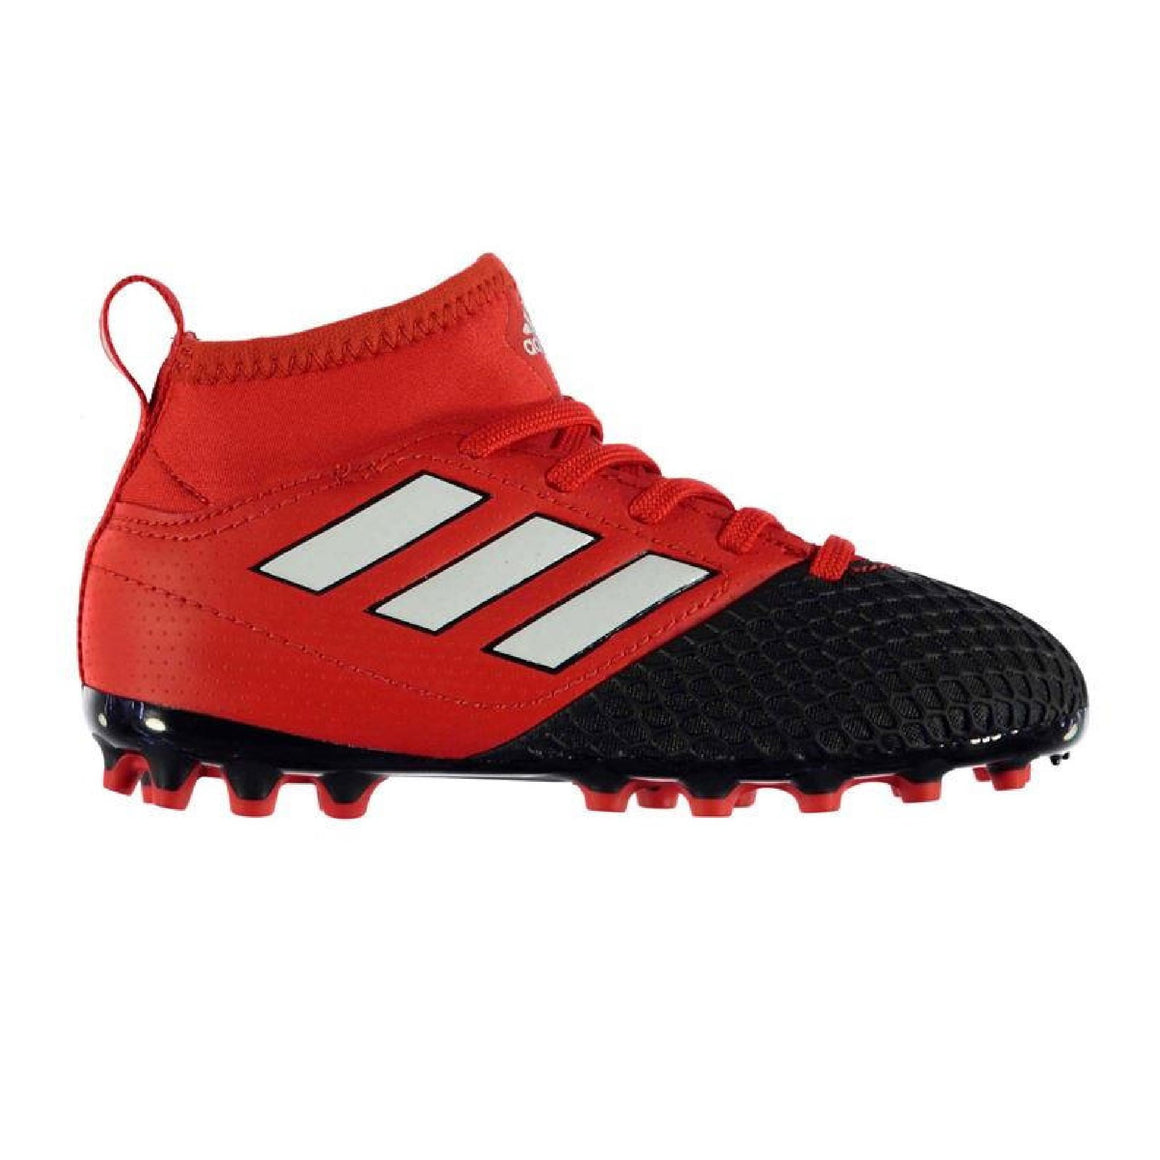 Kids adidas ACE 17.3 Football Shoe, Red/Black